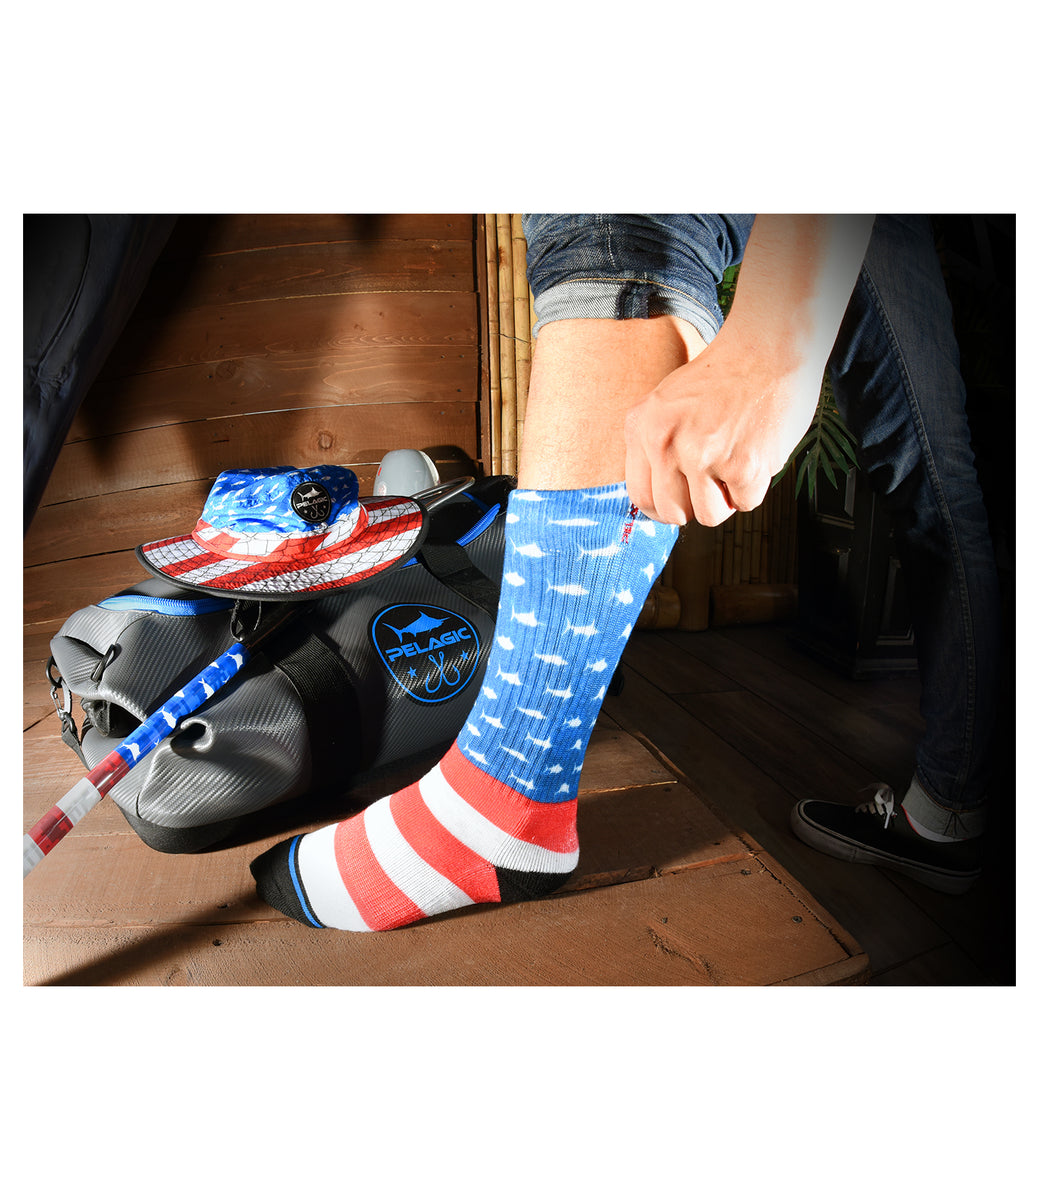 Proform Socks 2-Pack Americamo Big Image - 3